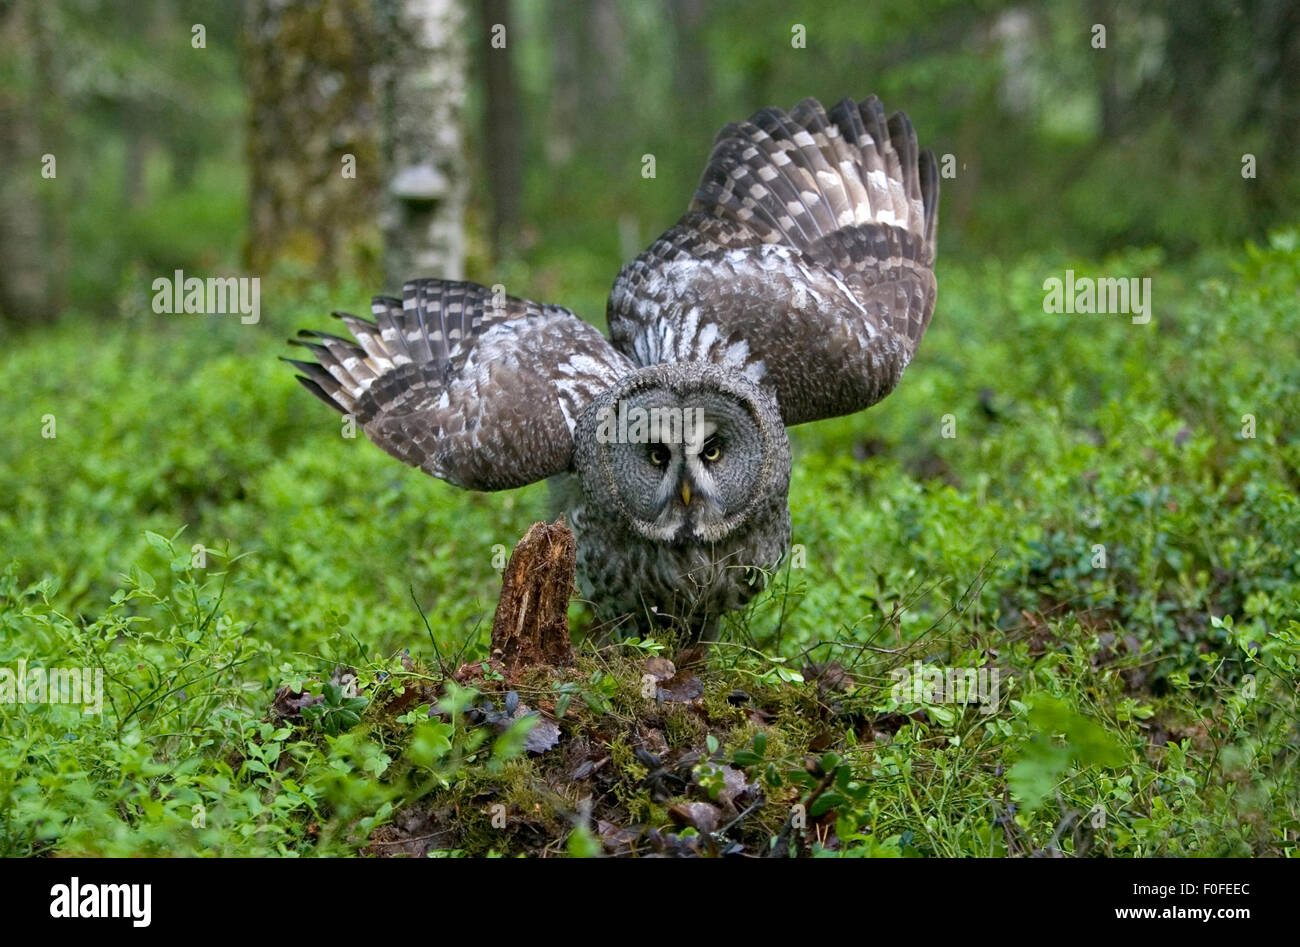 Great grey owl (Strix nebulosa) on ground with wings partially open, Northern Oulu, Finland, June 2008 - Stock Image